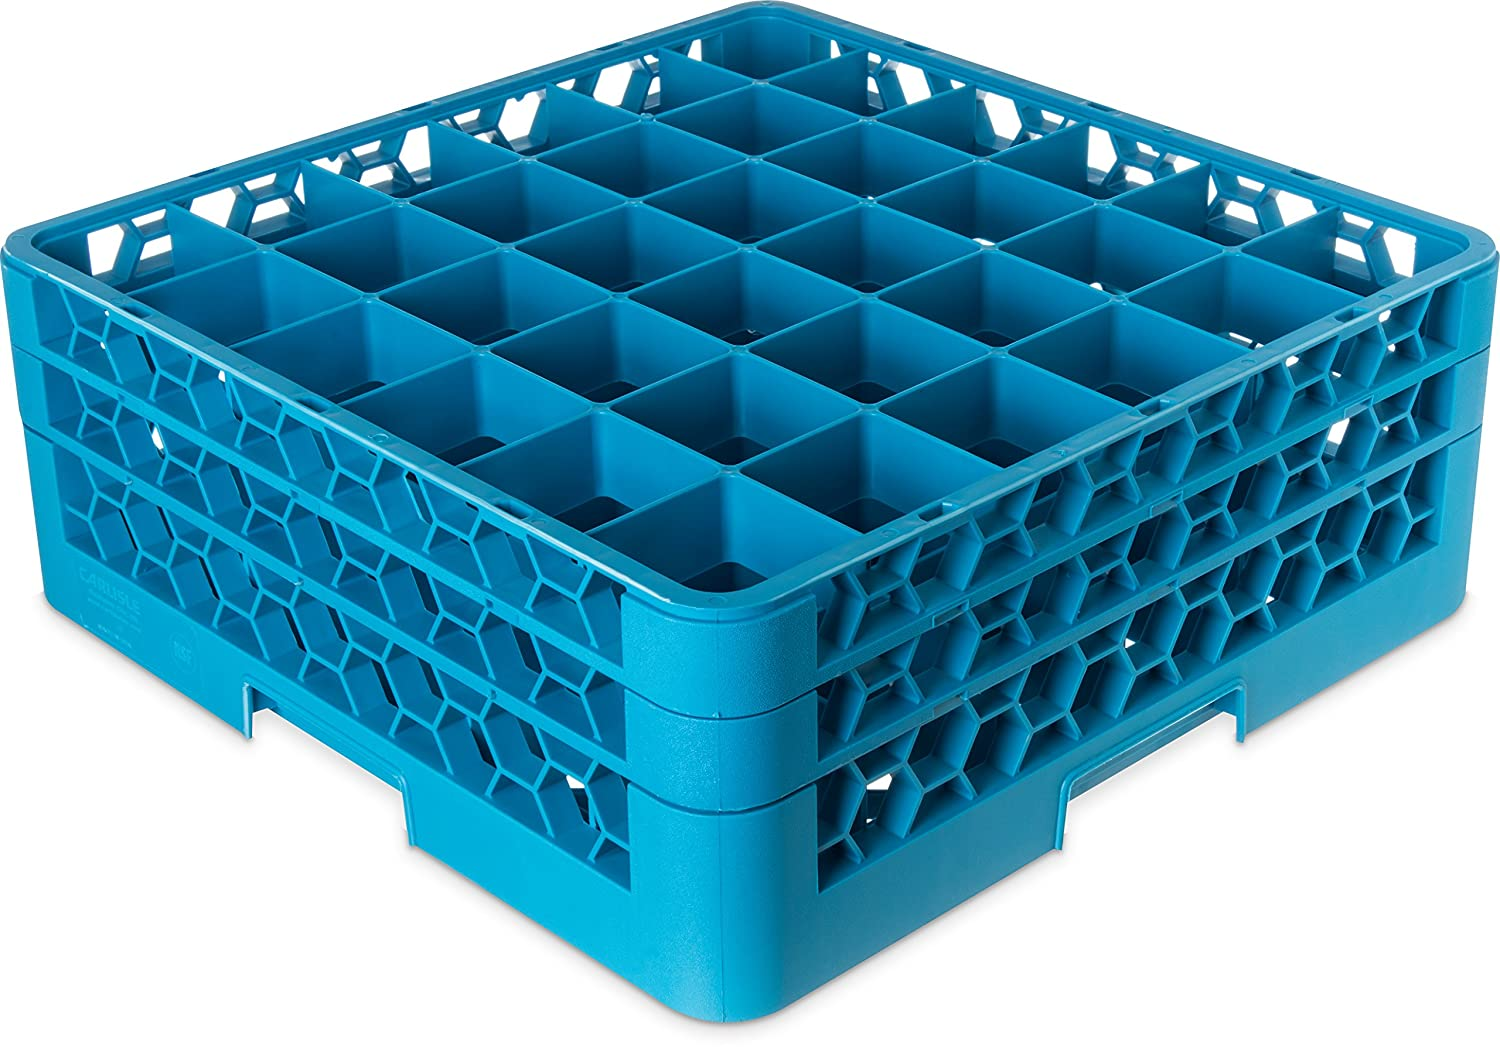 Carlisle RG36-214 OptiClean 36 Compartment Rack Max 57% OFF 2 with Baltimore Mall Glass Ext